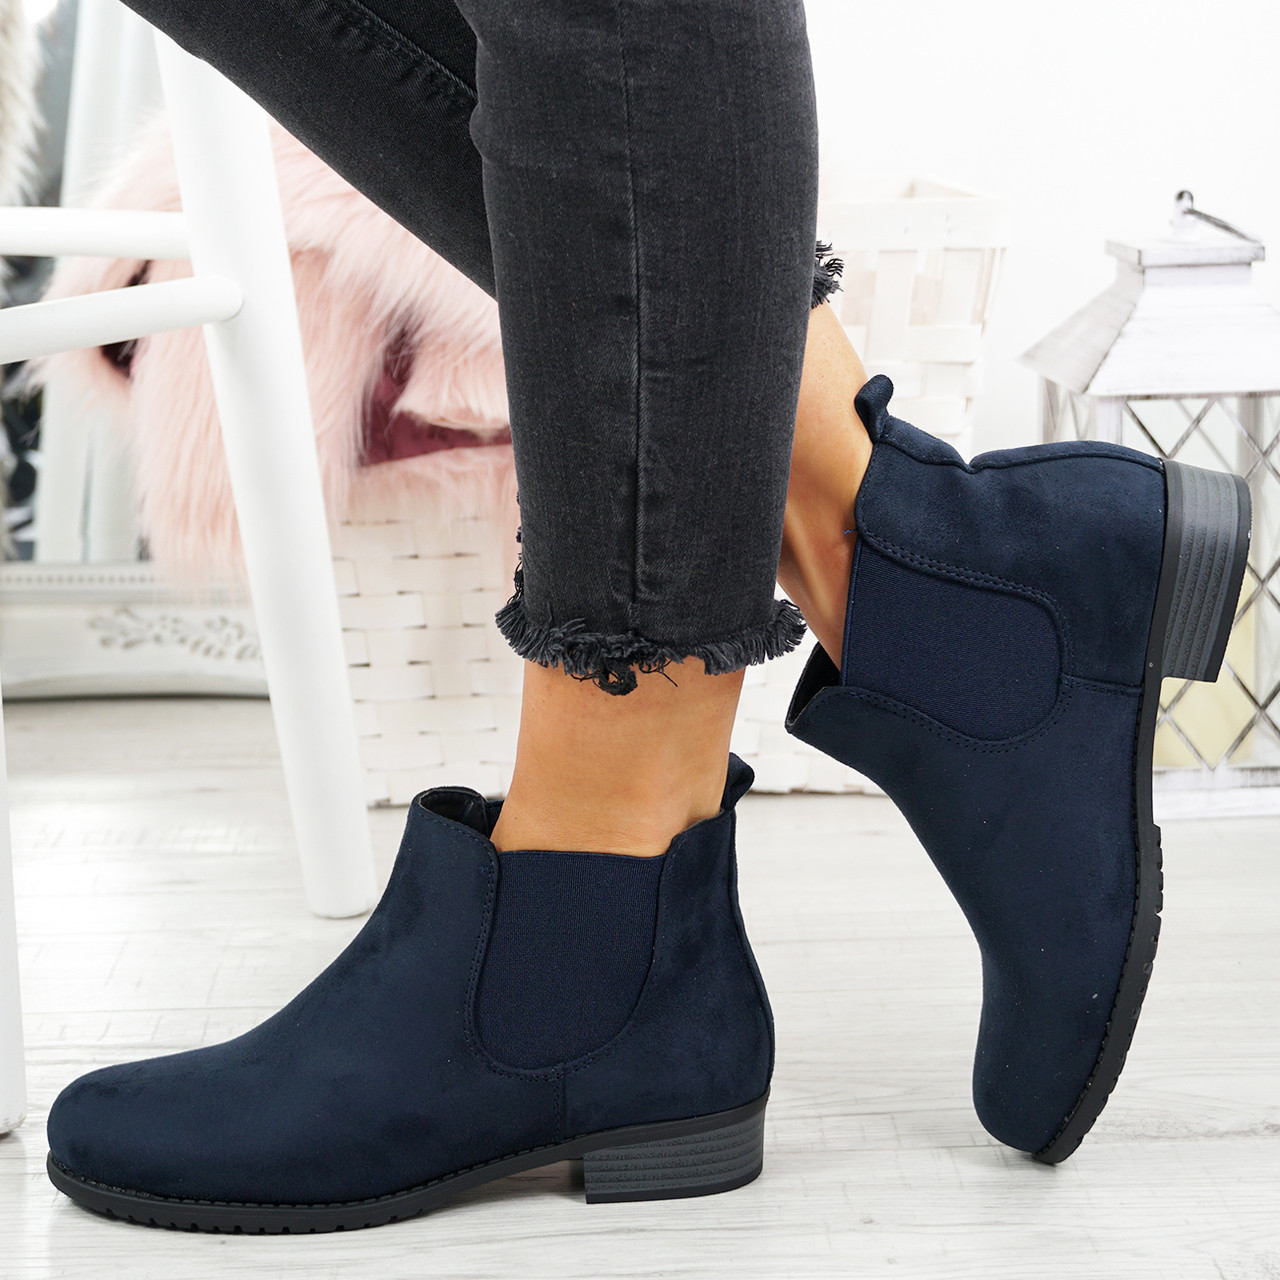 340cb359c6f2f New Womens Chelsea Ankle Boots Ladies Low Block Heel Comfy Slip On Shoes  Size Uk